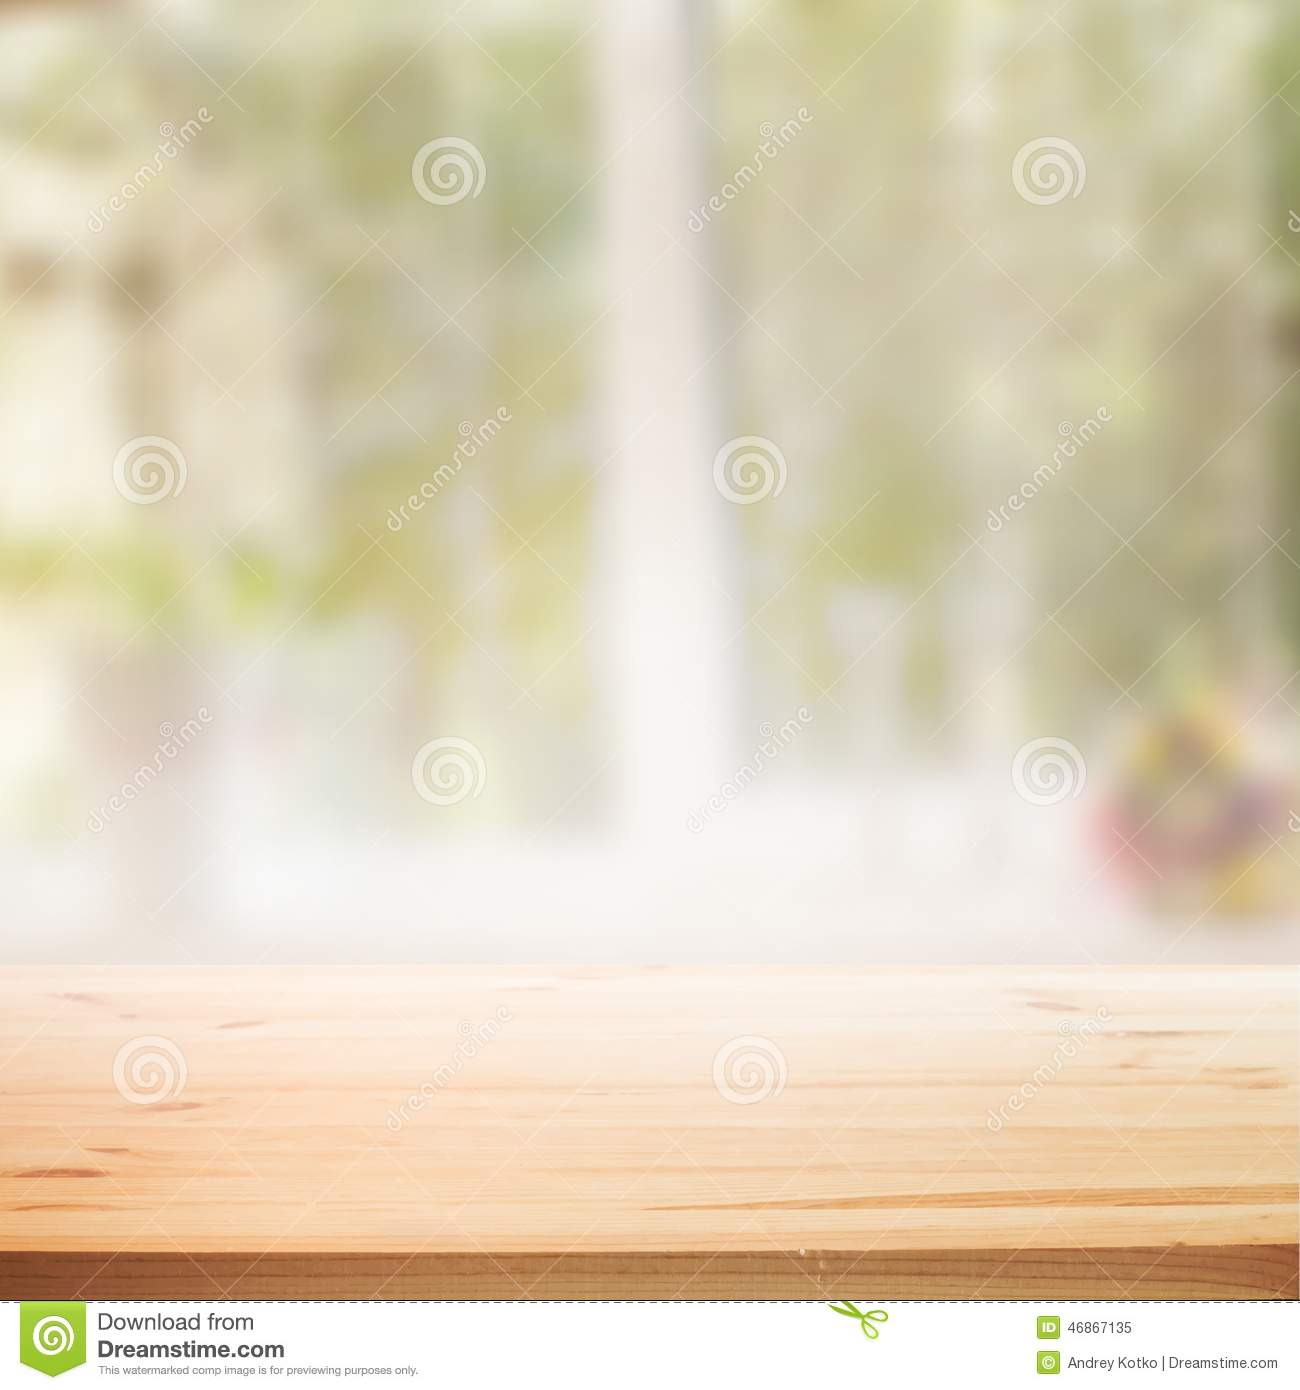 Perspective Wooden Table Background Stock Photo Image